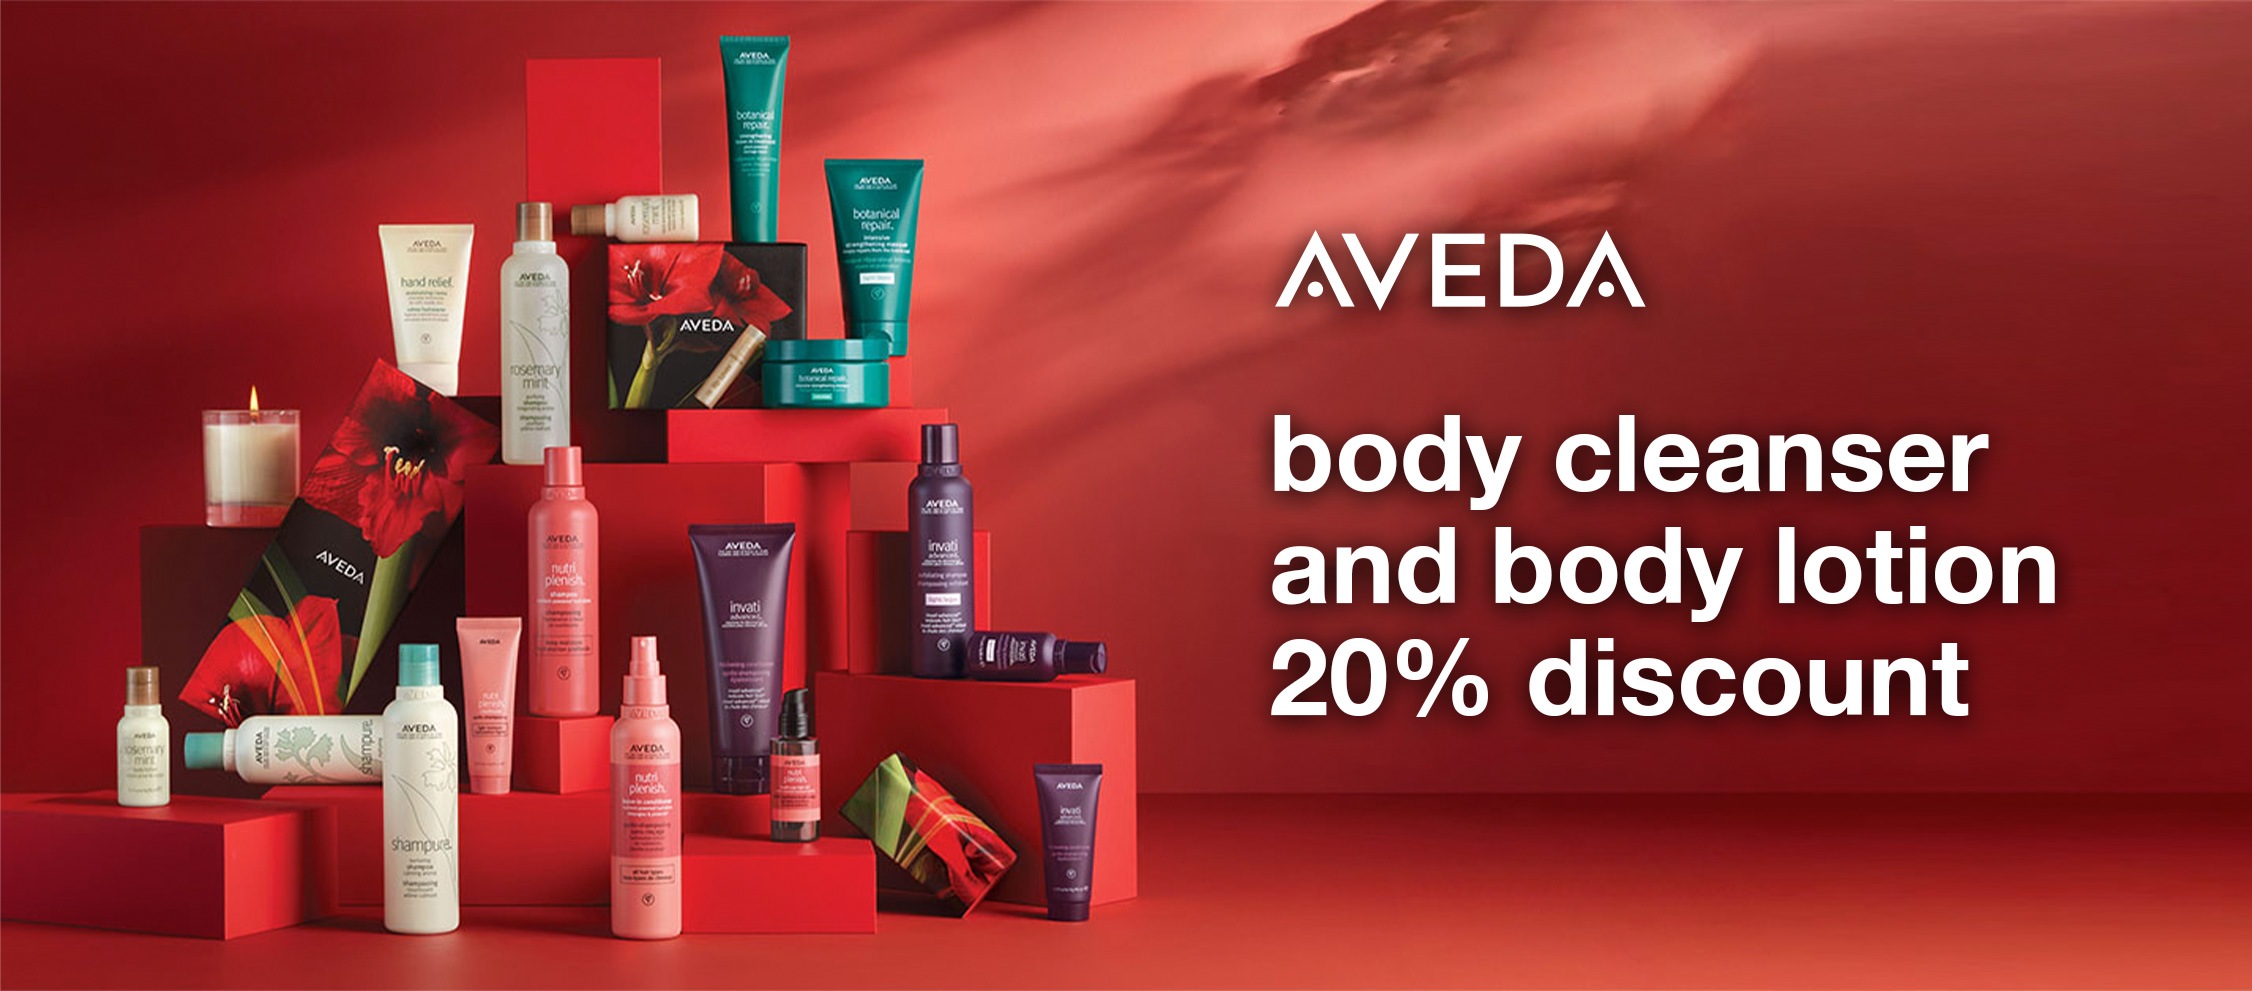 featured-aveda-body-cleanser-lotion-discount